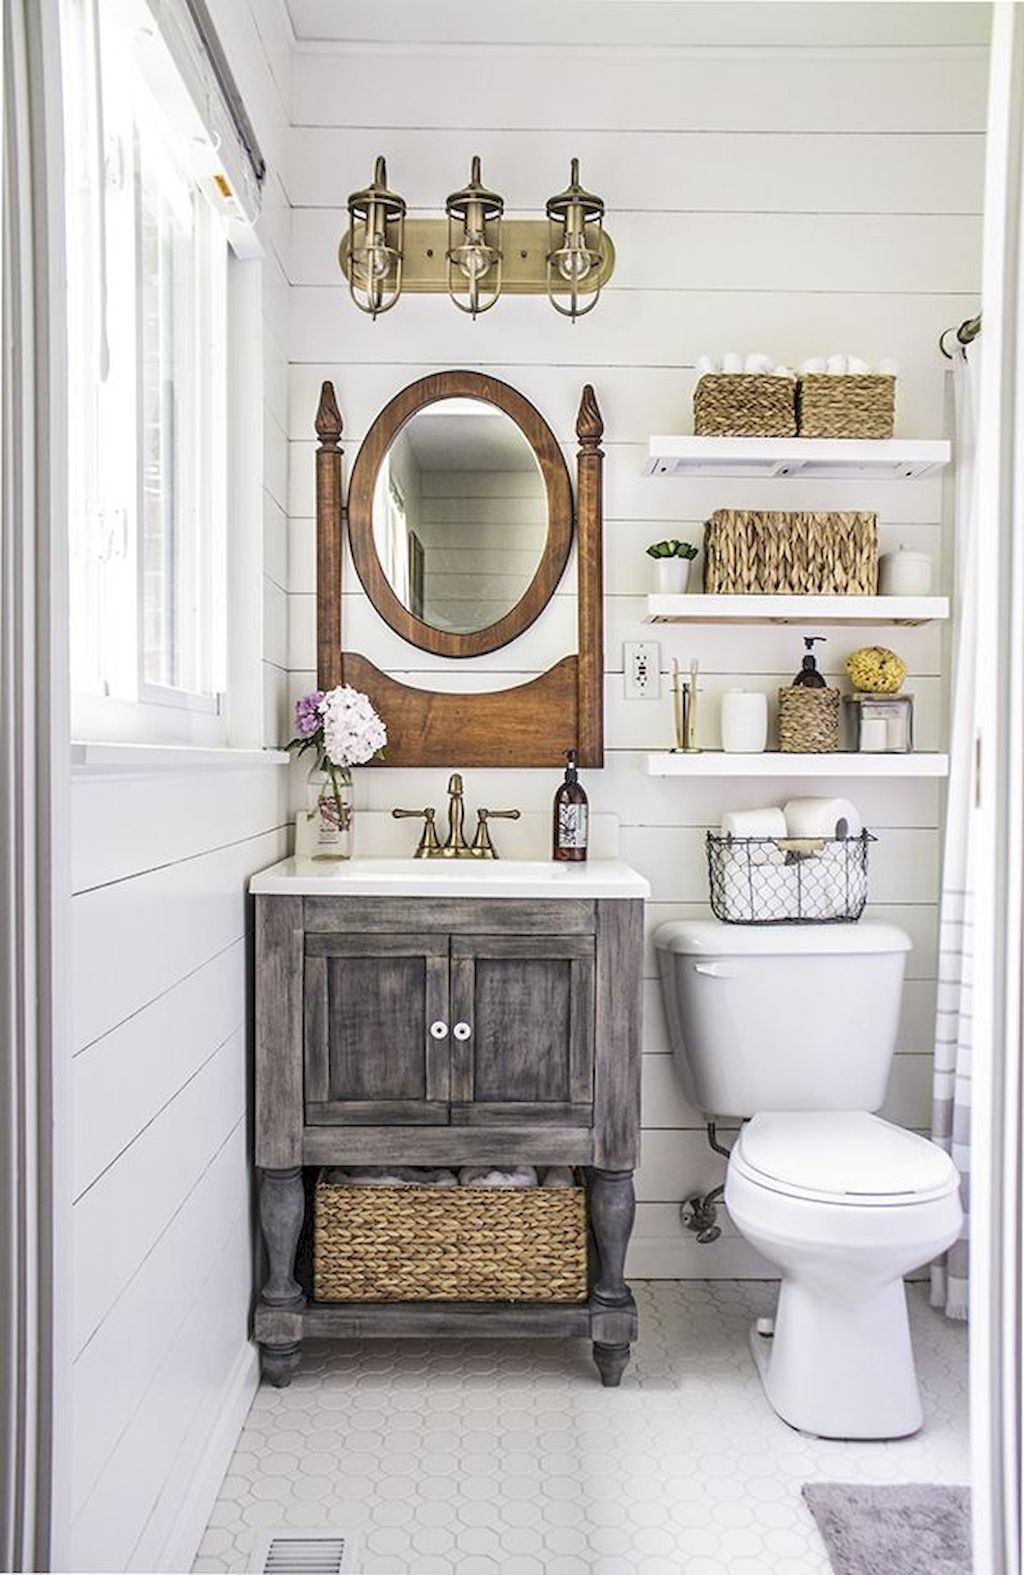 45 Farmhouse Rustic Bathroom Decor Ideas on A Budget | Pinterest ...